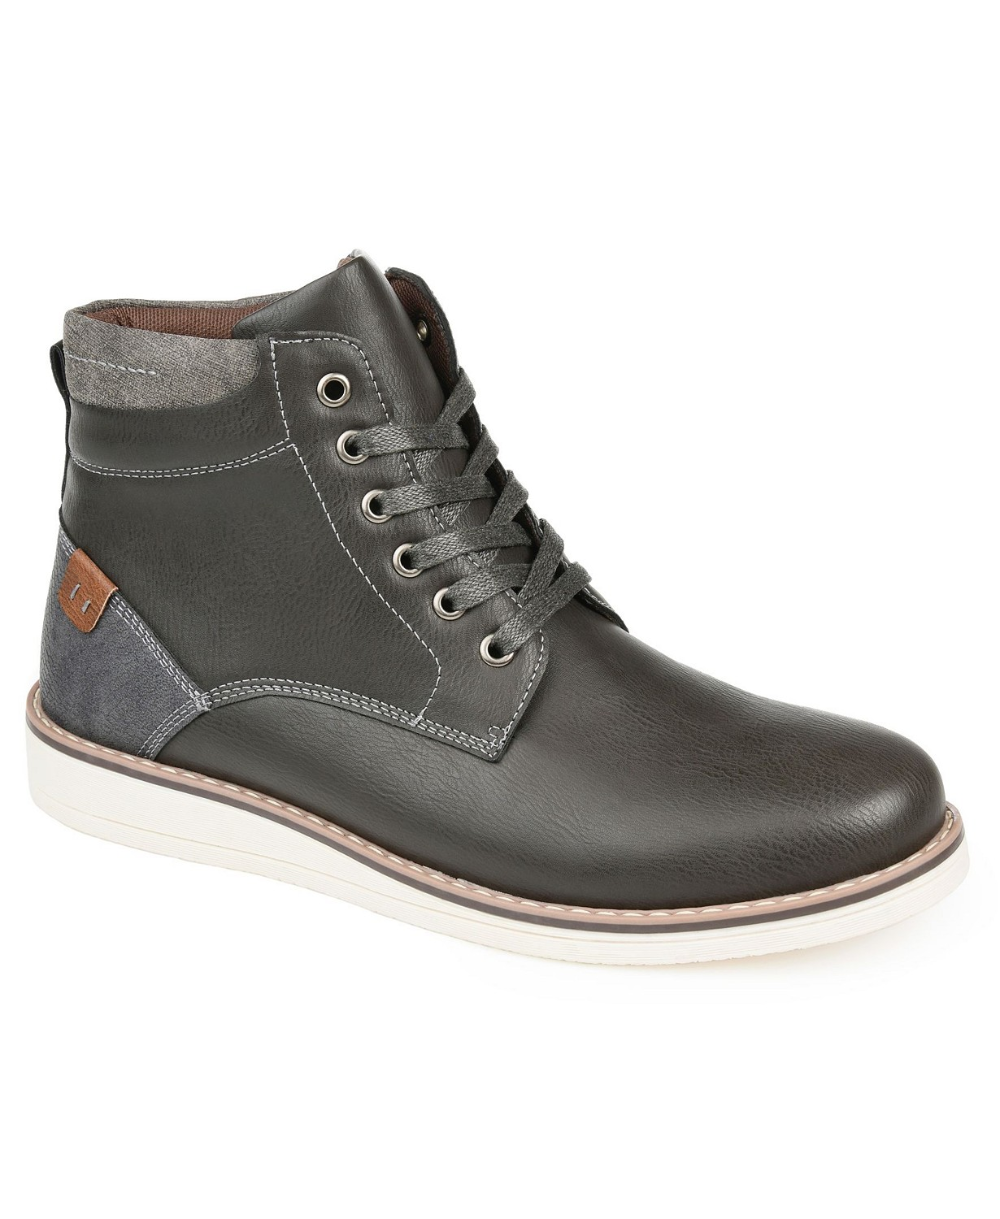 Evans Men's Ankle Boot